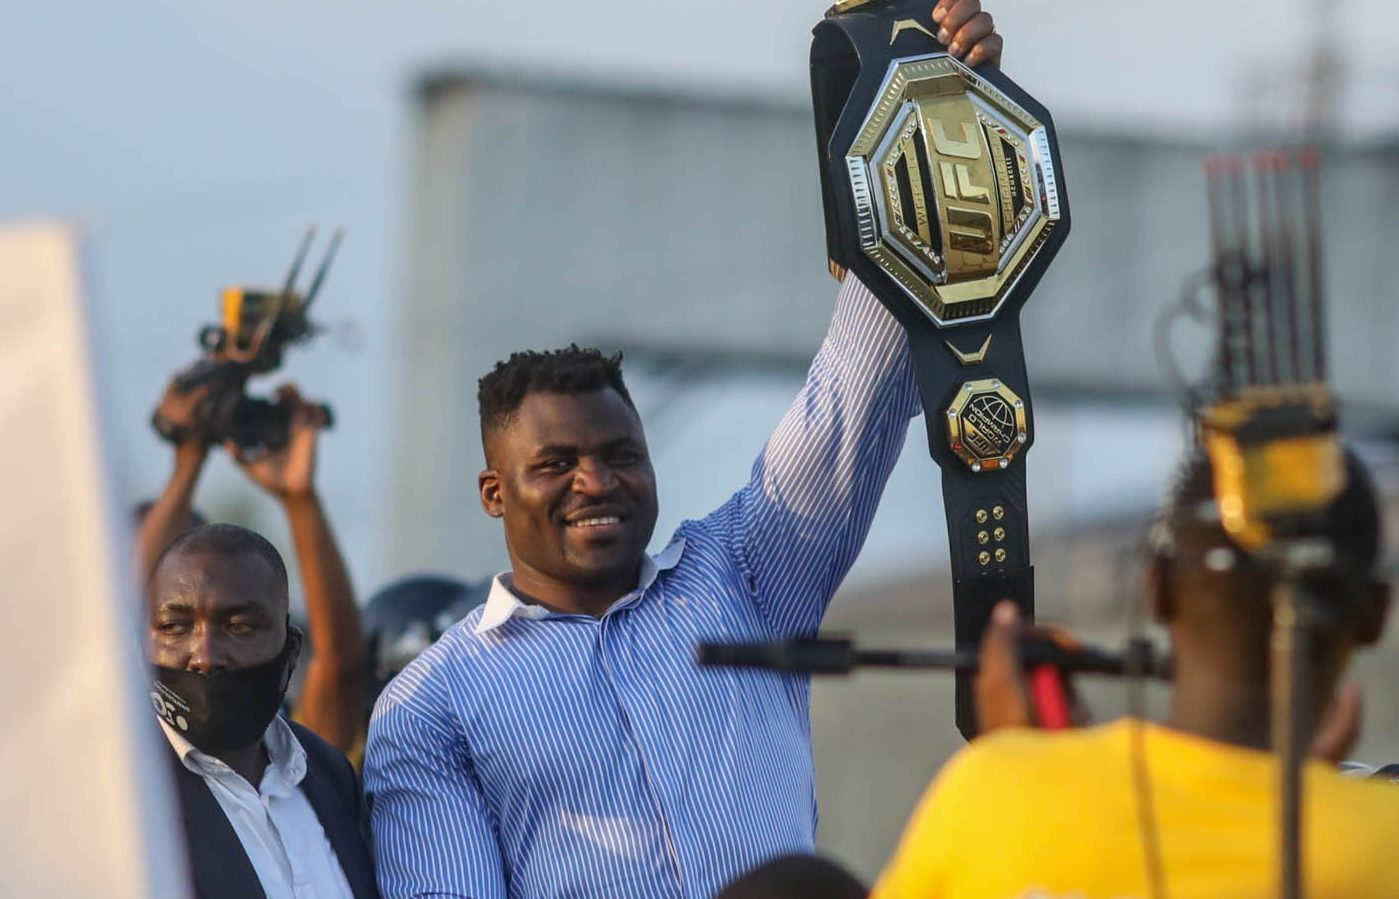 Francis Ngannou gets hero's welcome in Cameroon - Ngannou